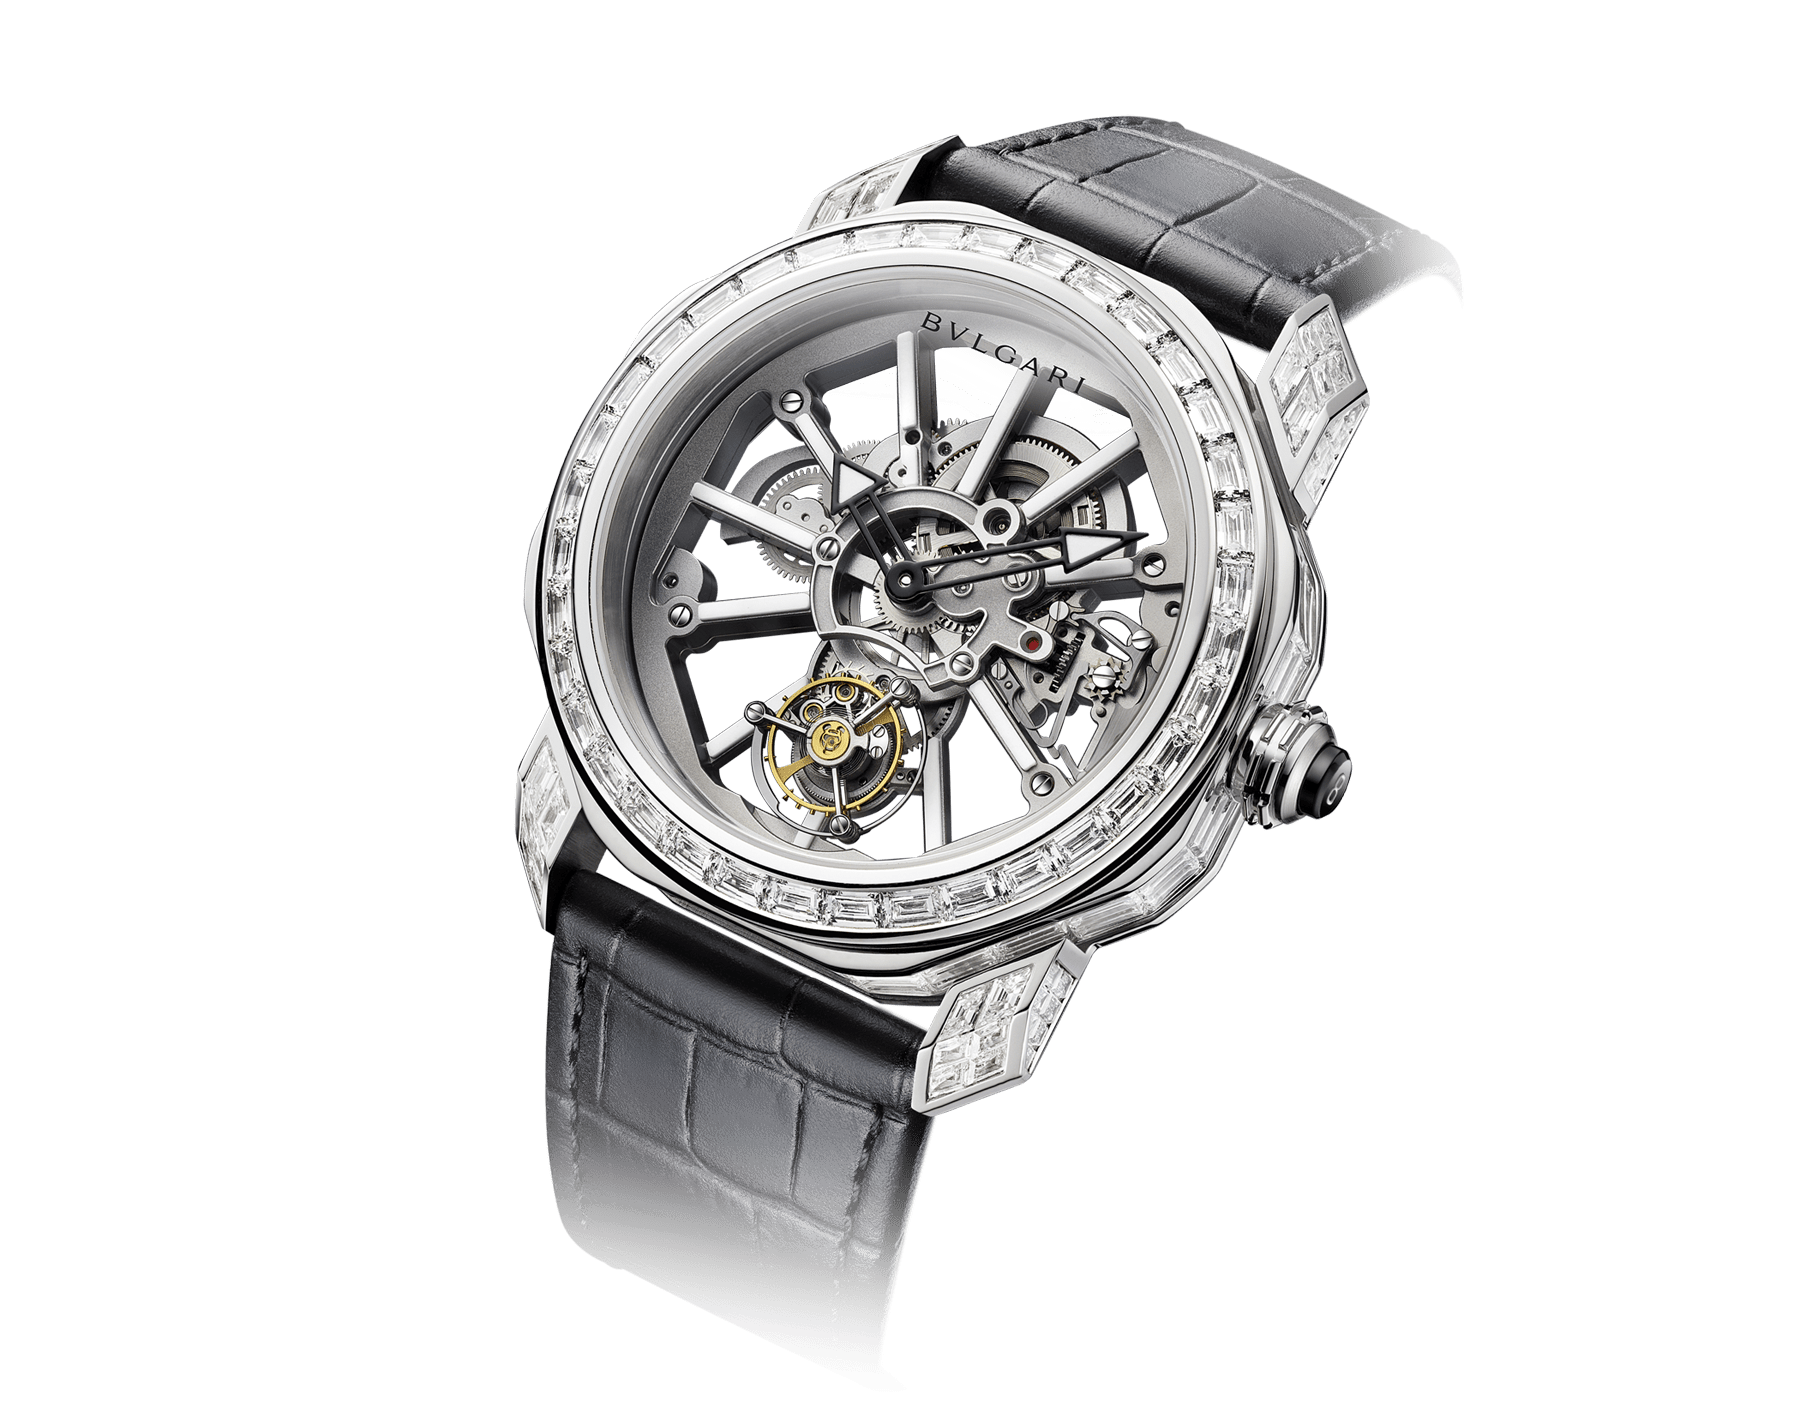 Octo Tourbillon Sapphire watch with mechanical manufacture movement, flying tourbillon, manual winding, platinum case set with 88 baguette-cut diamond, rhodium plated bridges decorated with white luminiscent bar-indexes in ITR2& SLN®, sapphire middle case, skeletonized dial and black alligator bracelet 102956 image 3